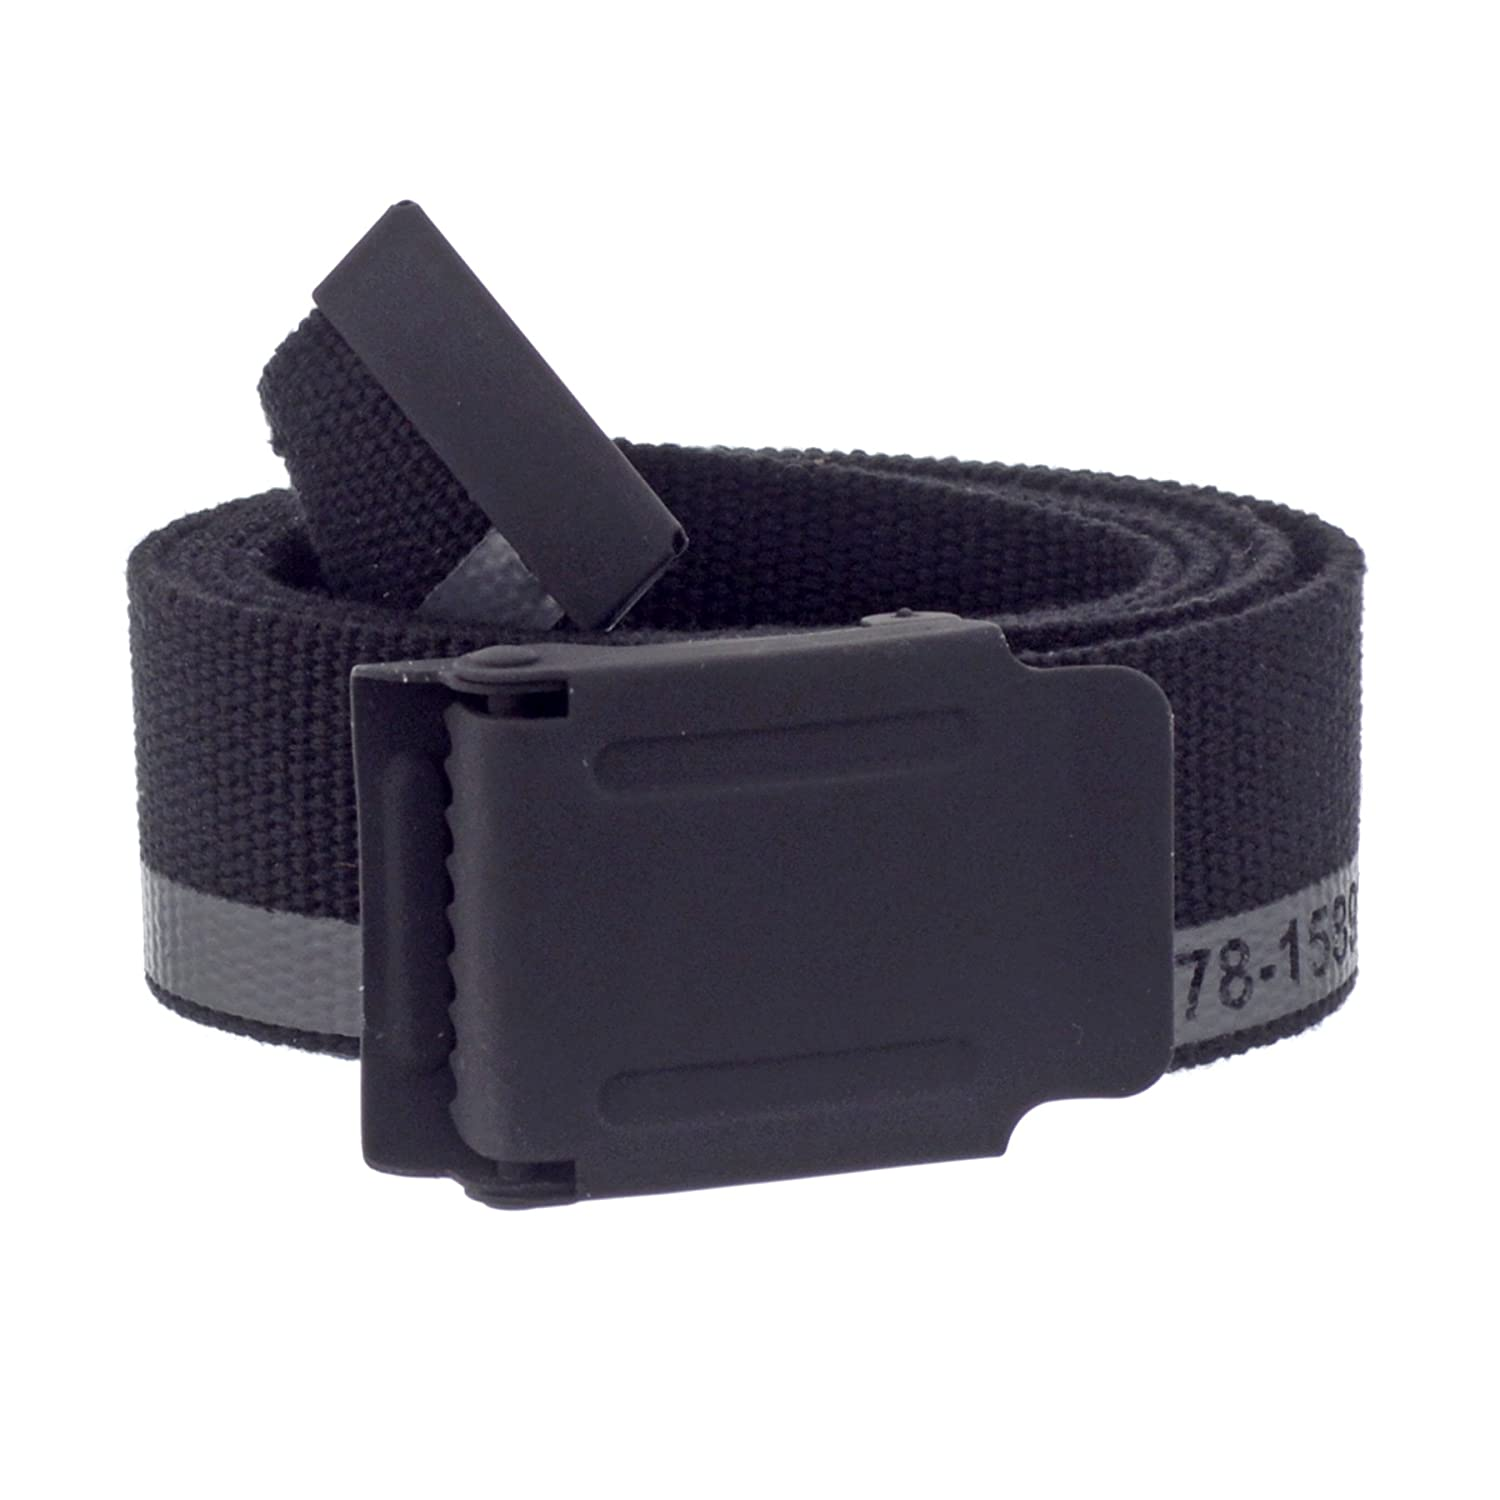 X-CESSOIRE Mens Military /& Outdoor Tactical Web Belt with Metal Buckle